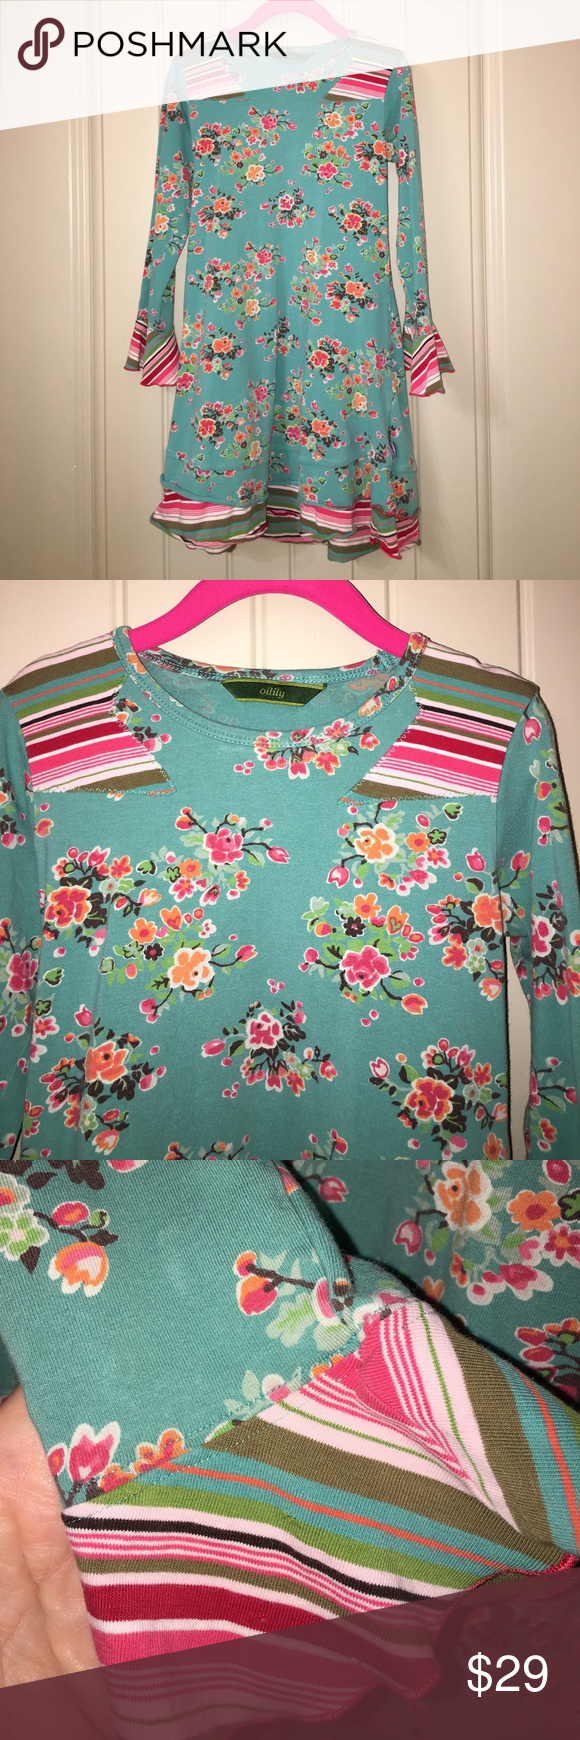 Girls OILILY 116 5/6 yr Euro Aqua School Dress This is a Girls OILILY sz 116 5/6 yr Euro Aqua Blue Floral ruffle School Dress, good used condition, does have a pinhole on sleeve as seen in pic! I ship fast! Happy poshing friends! Oilily Dresses Casual